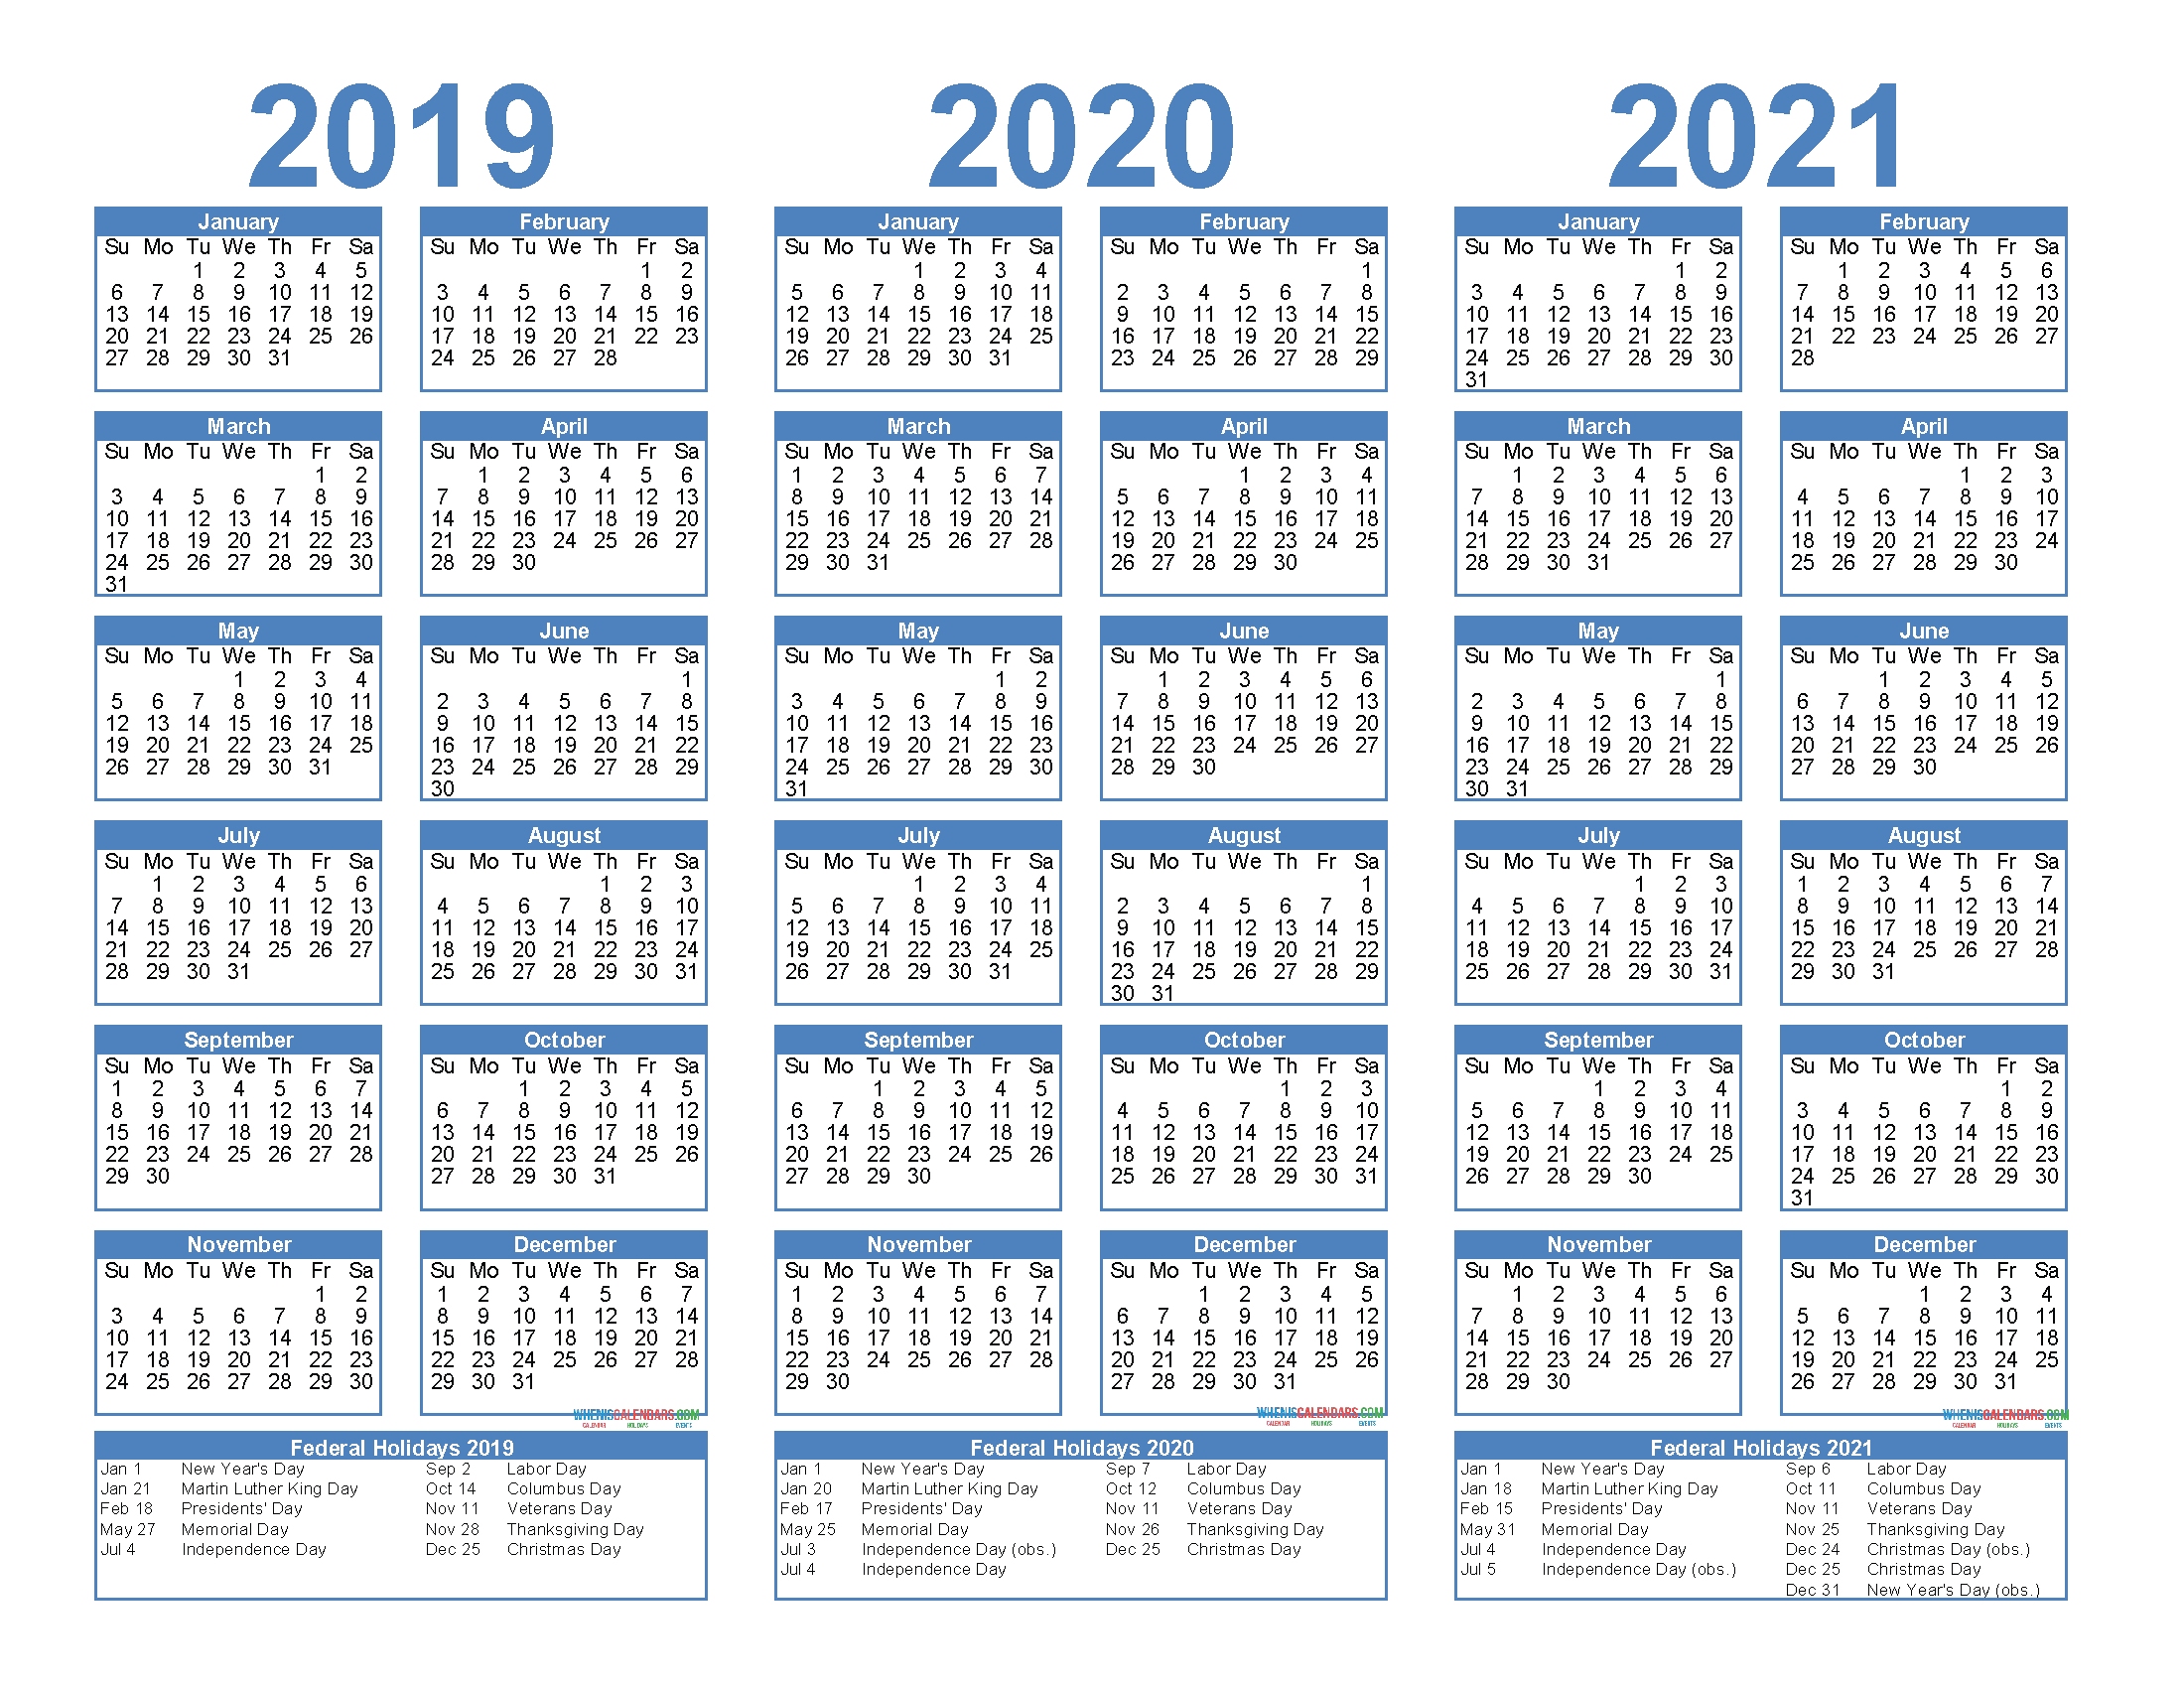 2021 Print Free Calendars Without Downloading | Calendar within Aramco Calender 2021